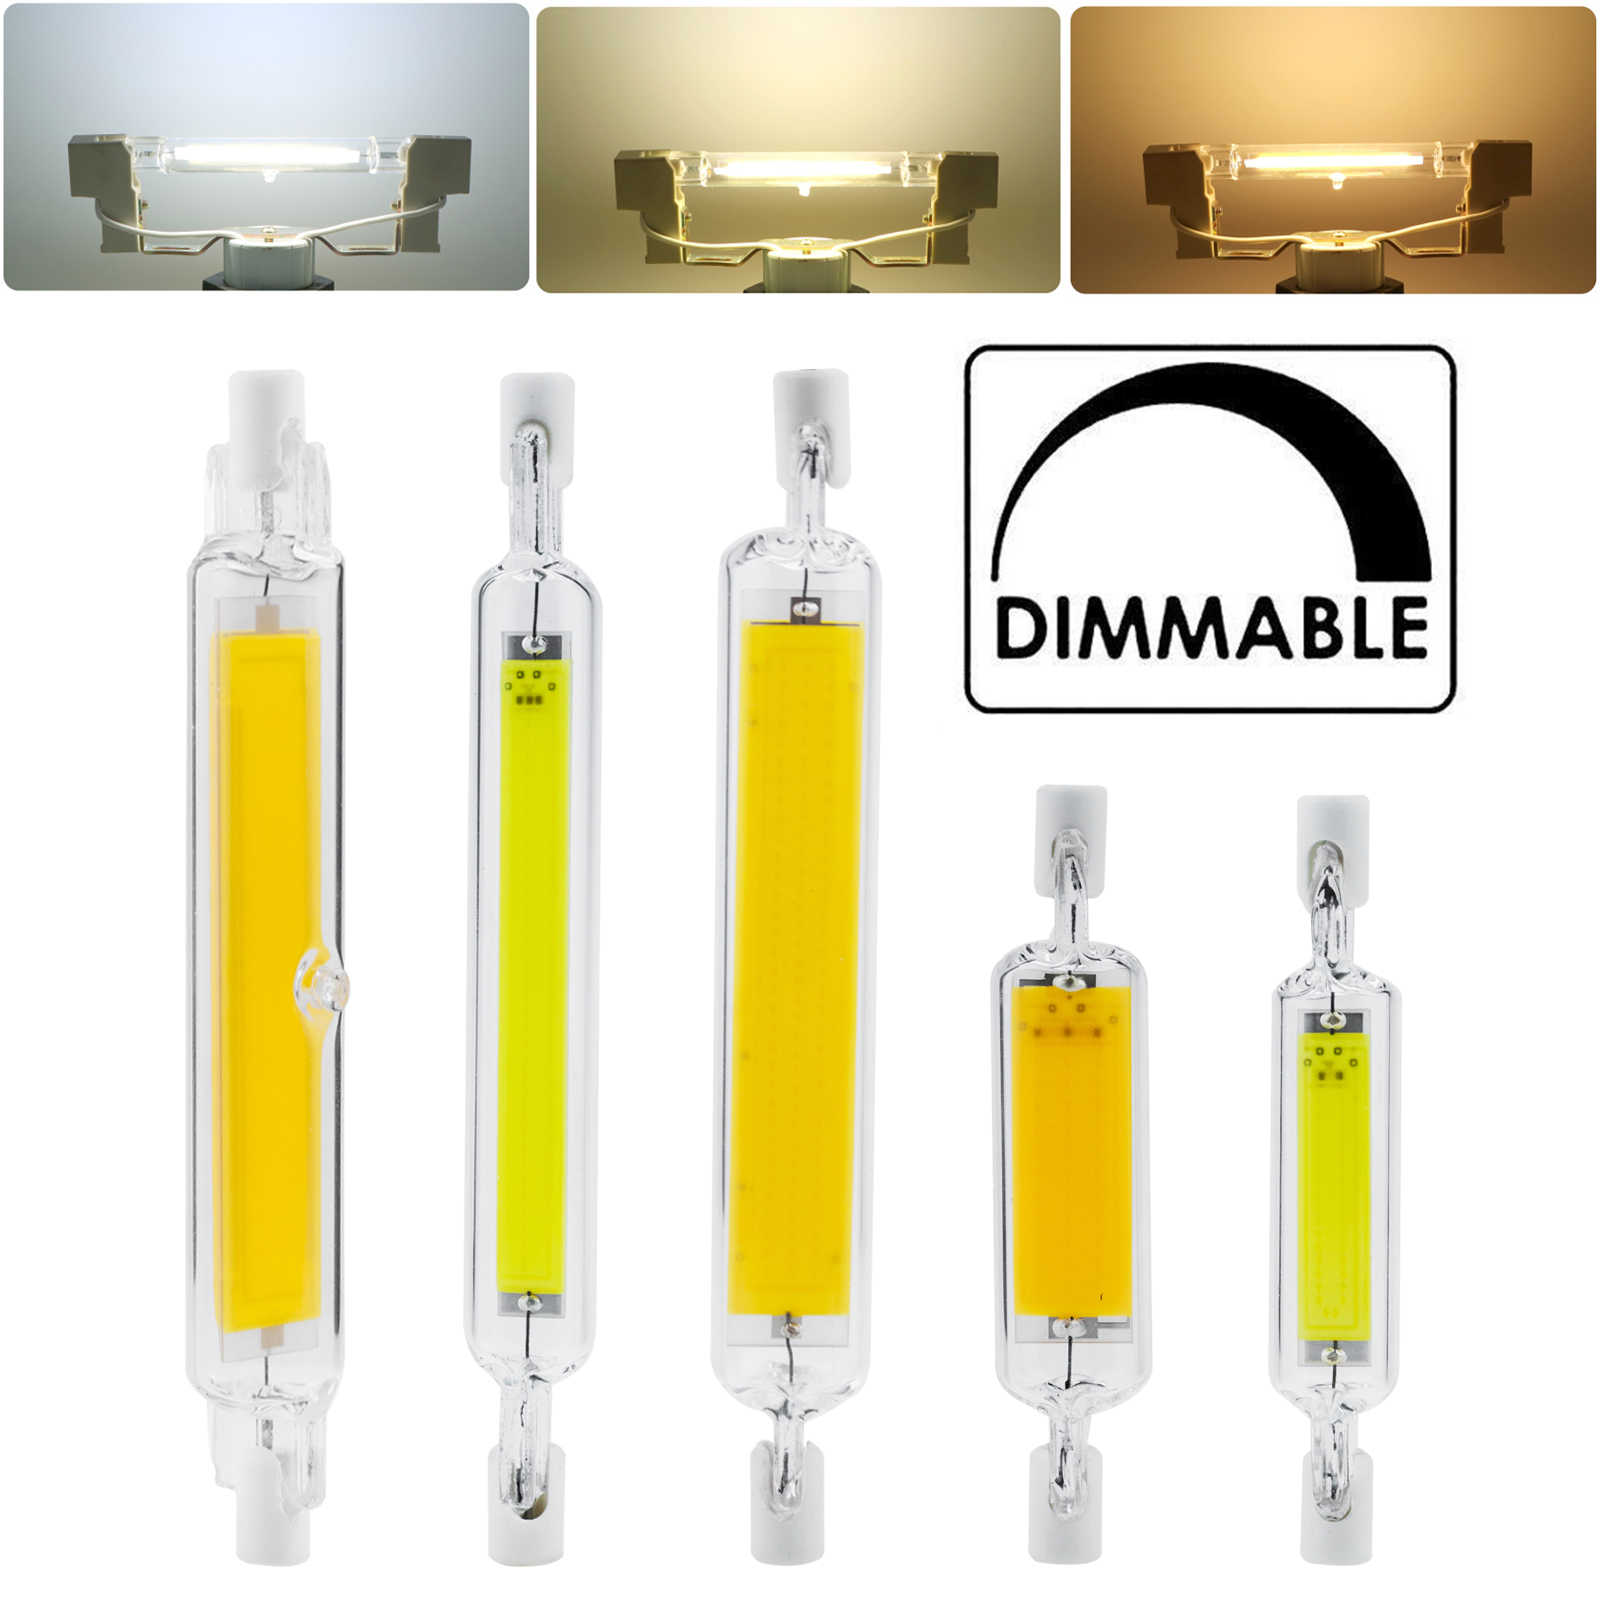 Dimmable R7s LED COB Lampu 78 Mm 118 Mm 5W 10W 20W 110V 220V lampu Sorot Worklight J Type Double Ended Putih Lampu Tabung Kaca